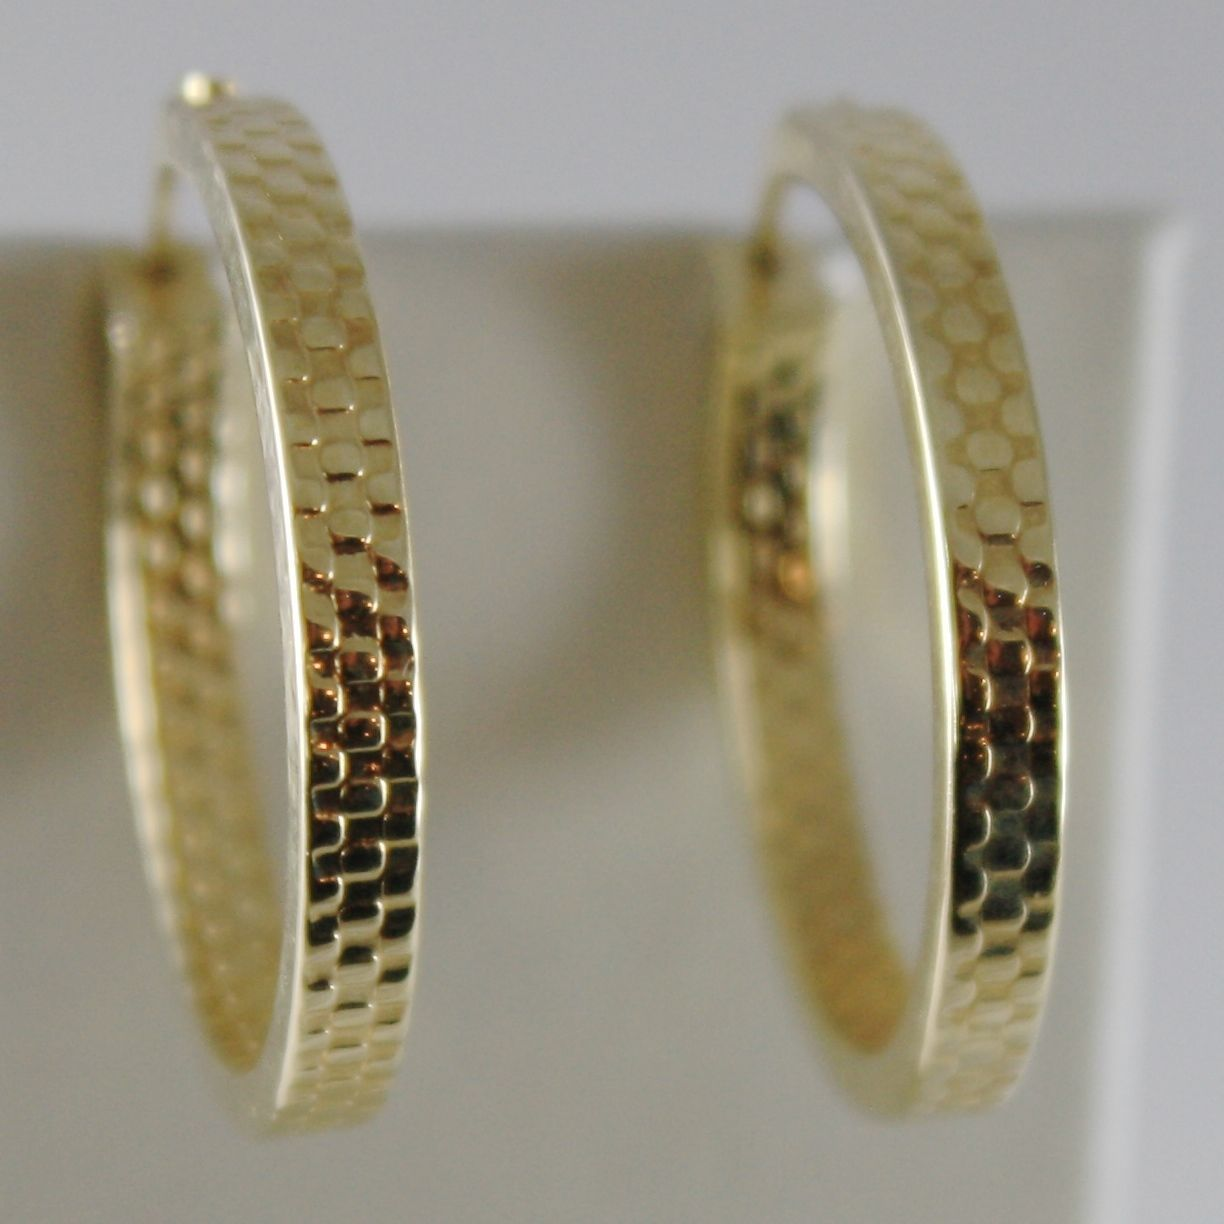 18K YELLOW GOLD EARRINGS SQUARED CIRCLE HOOP HIVE WORKED 24 MM DIA MADE IN ITALY